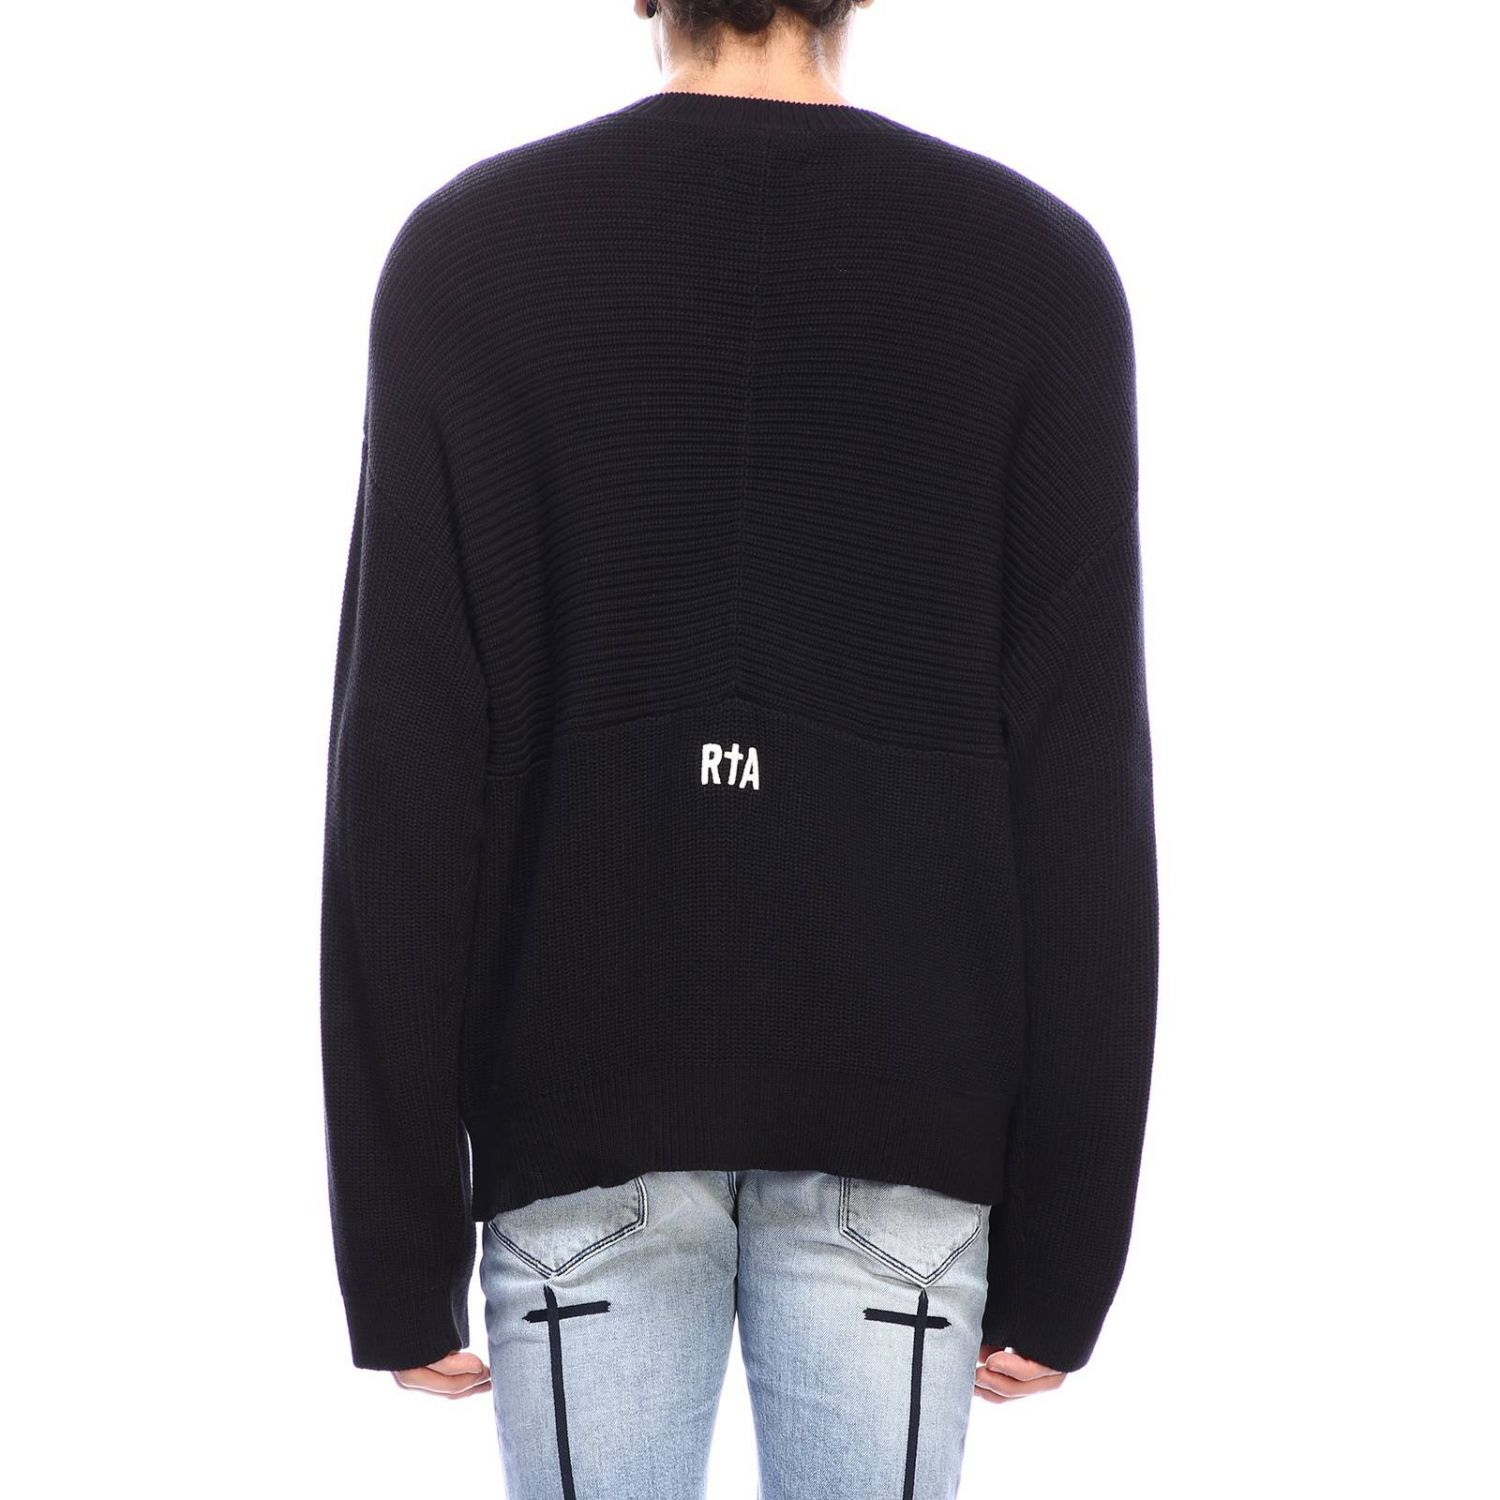 Sweater men Rta black 3